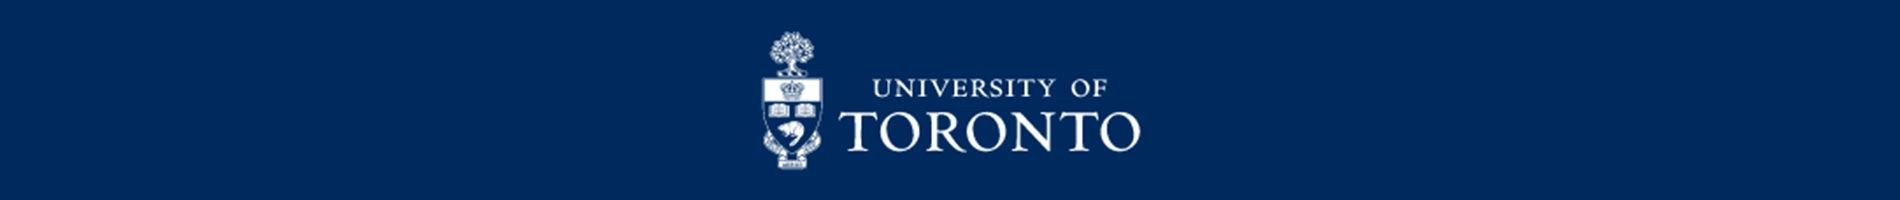 University of Toronto - Memory and Company